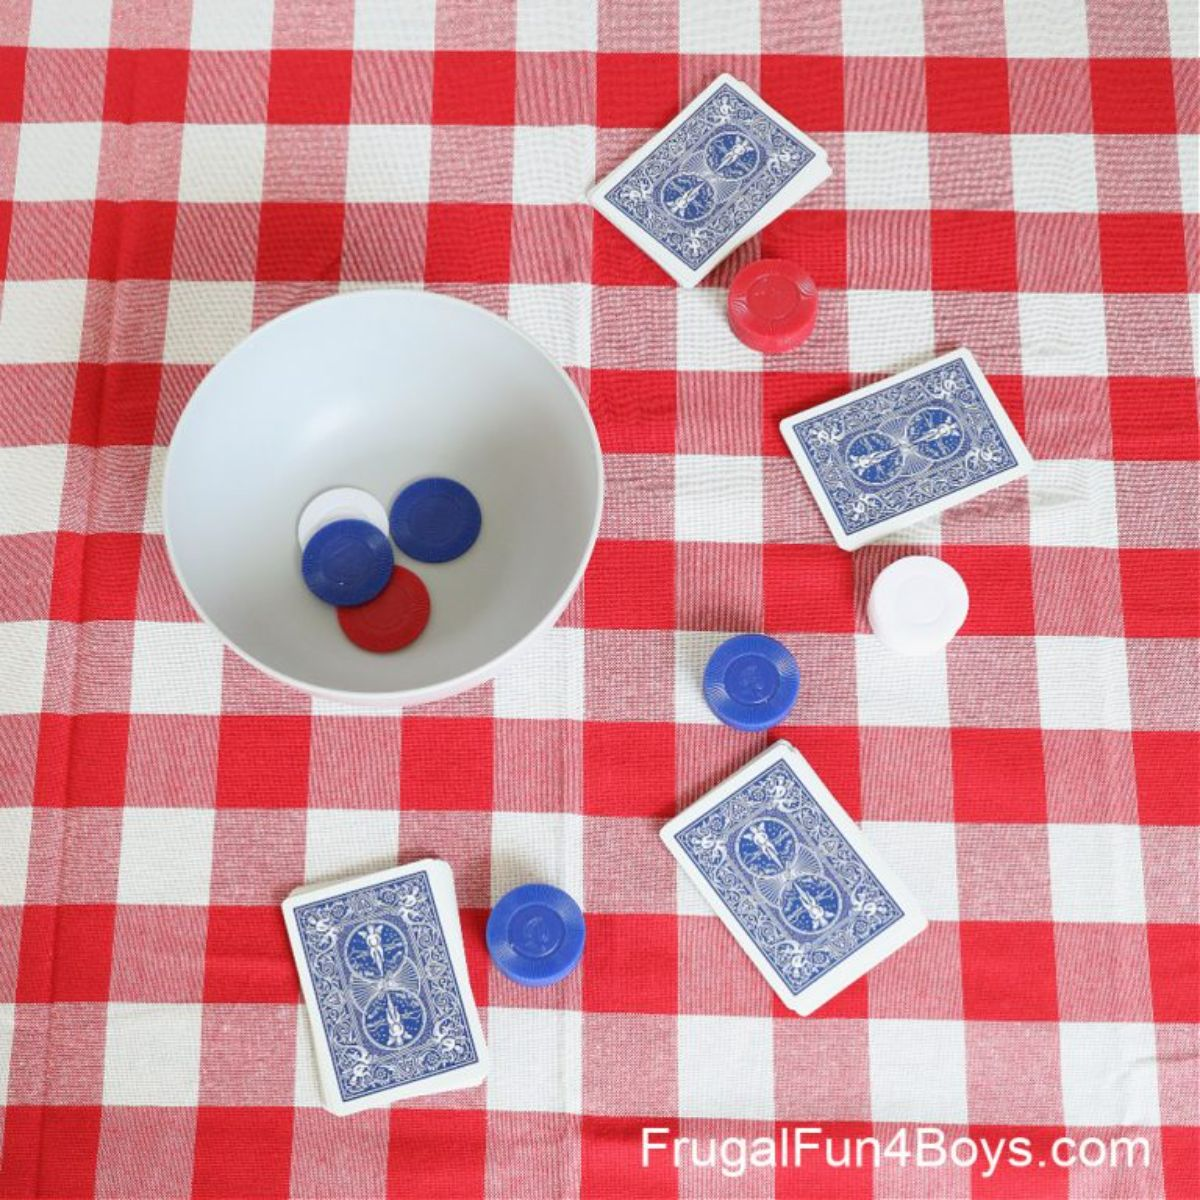 on a checked tablecloth is a white bowl full of plastic coins. 4 playing cards lay face down